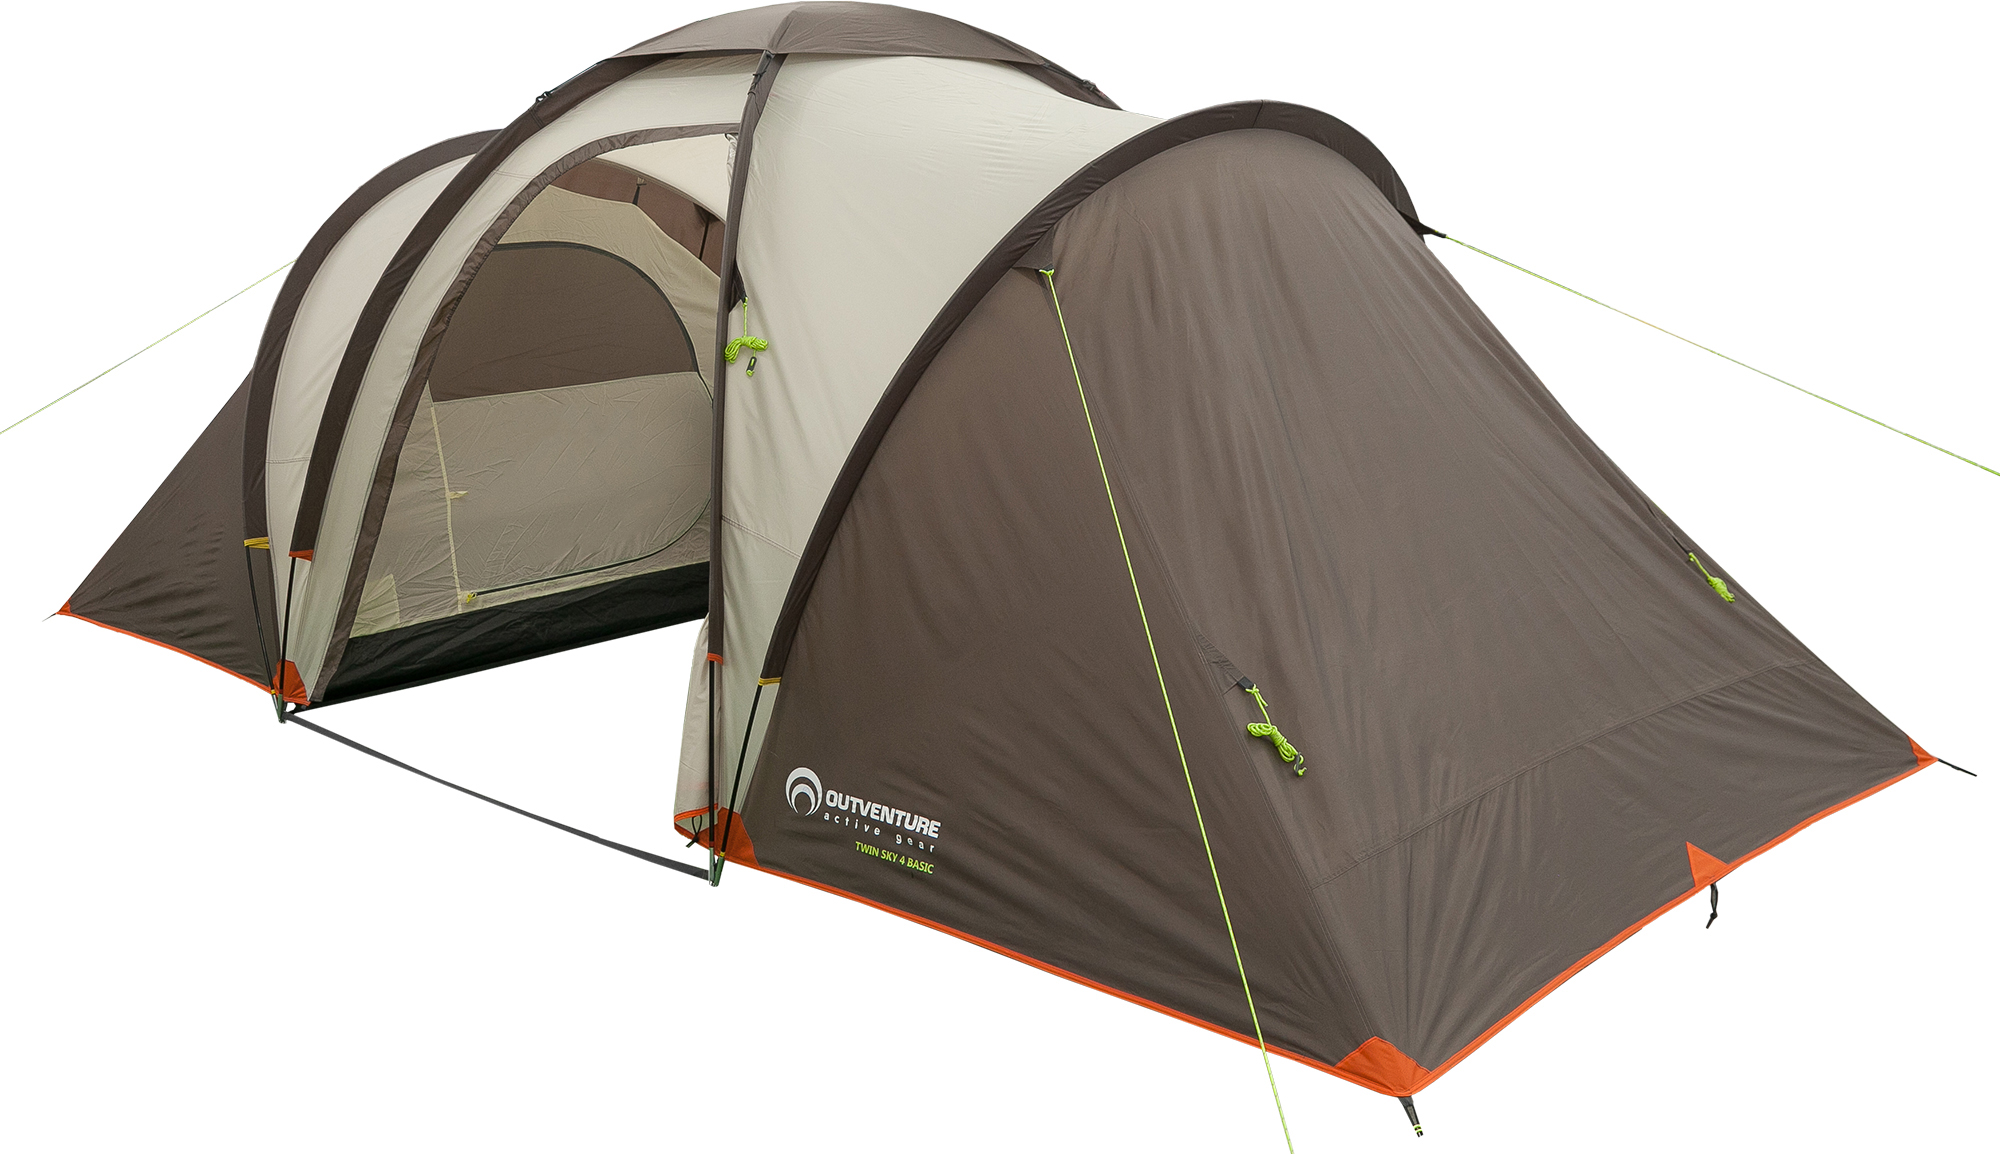 Outventure Twin Sky 4 Basic v2